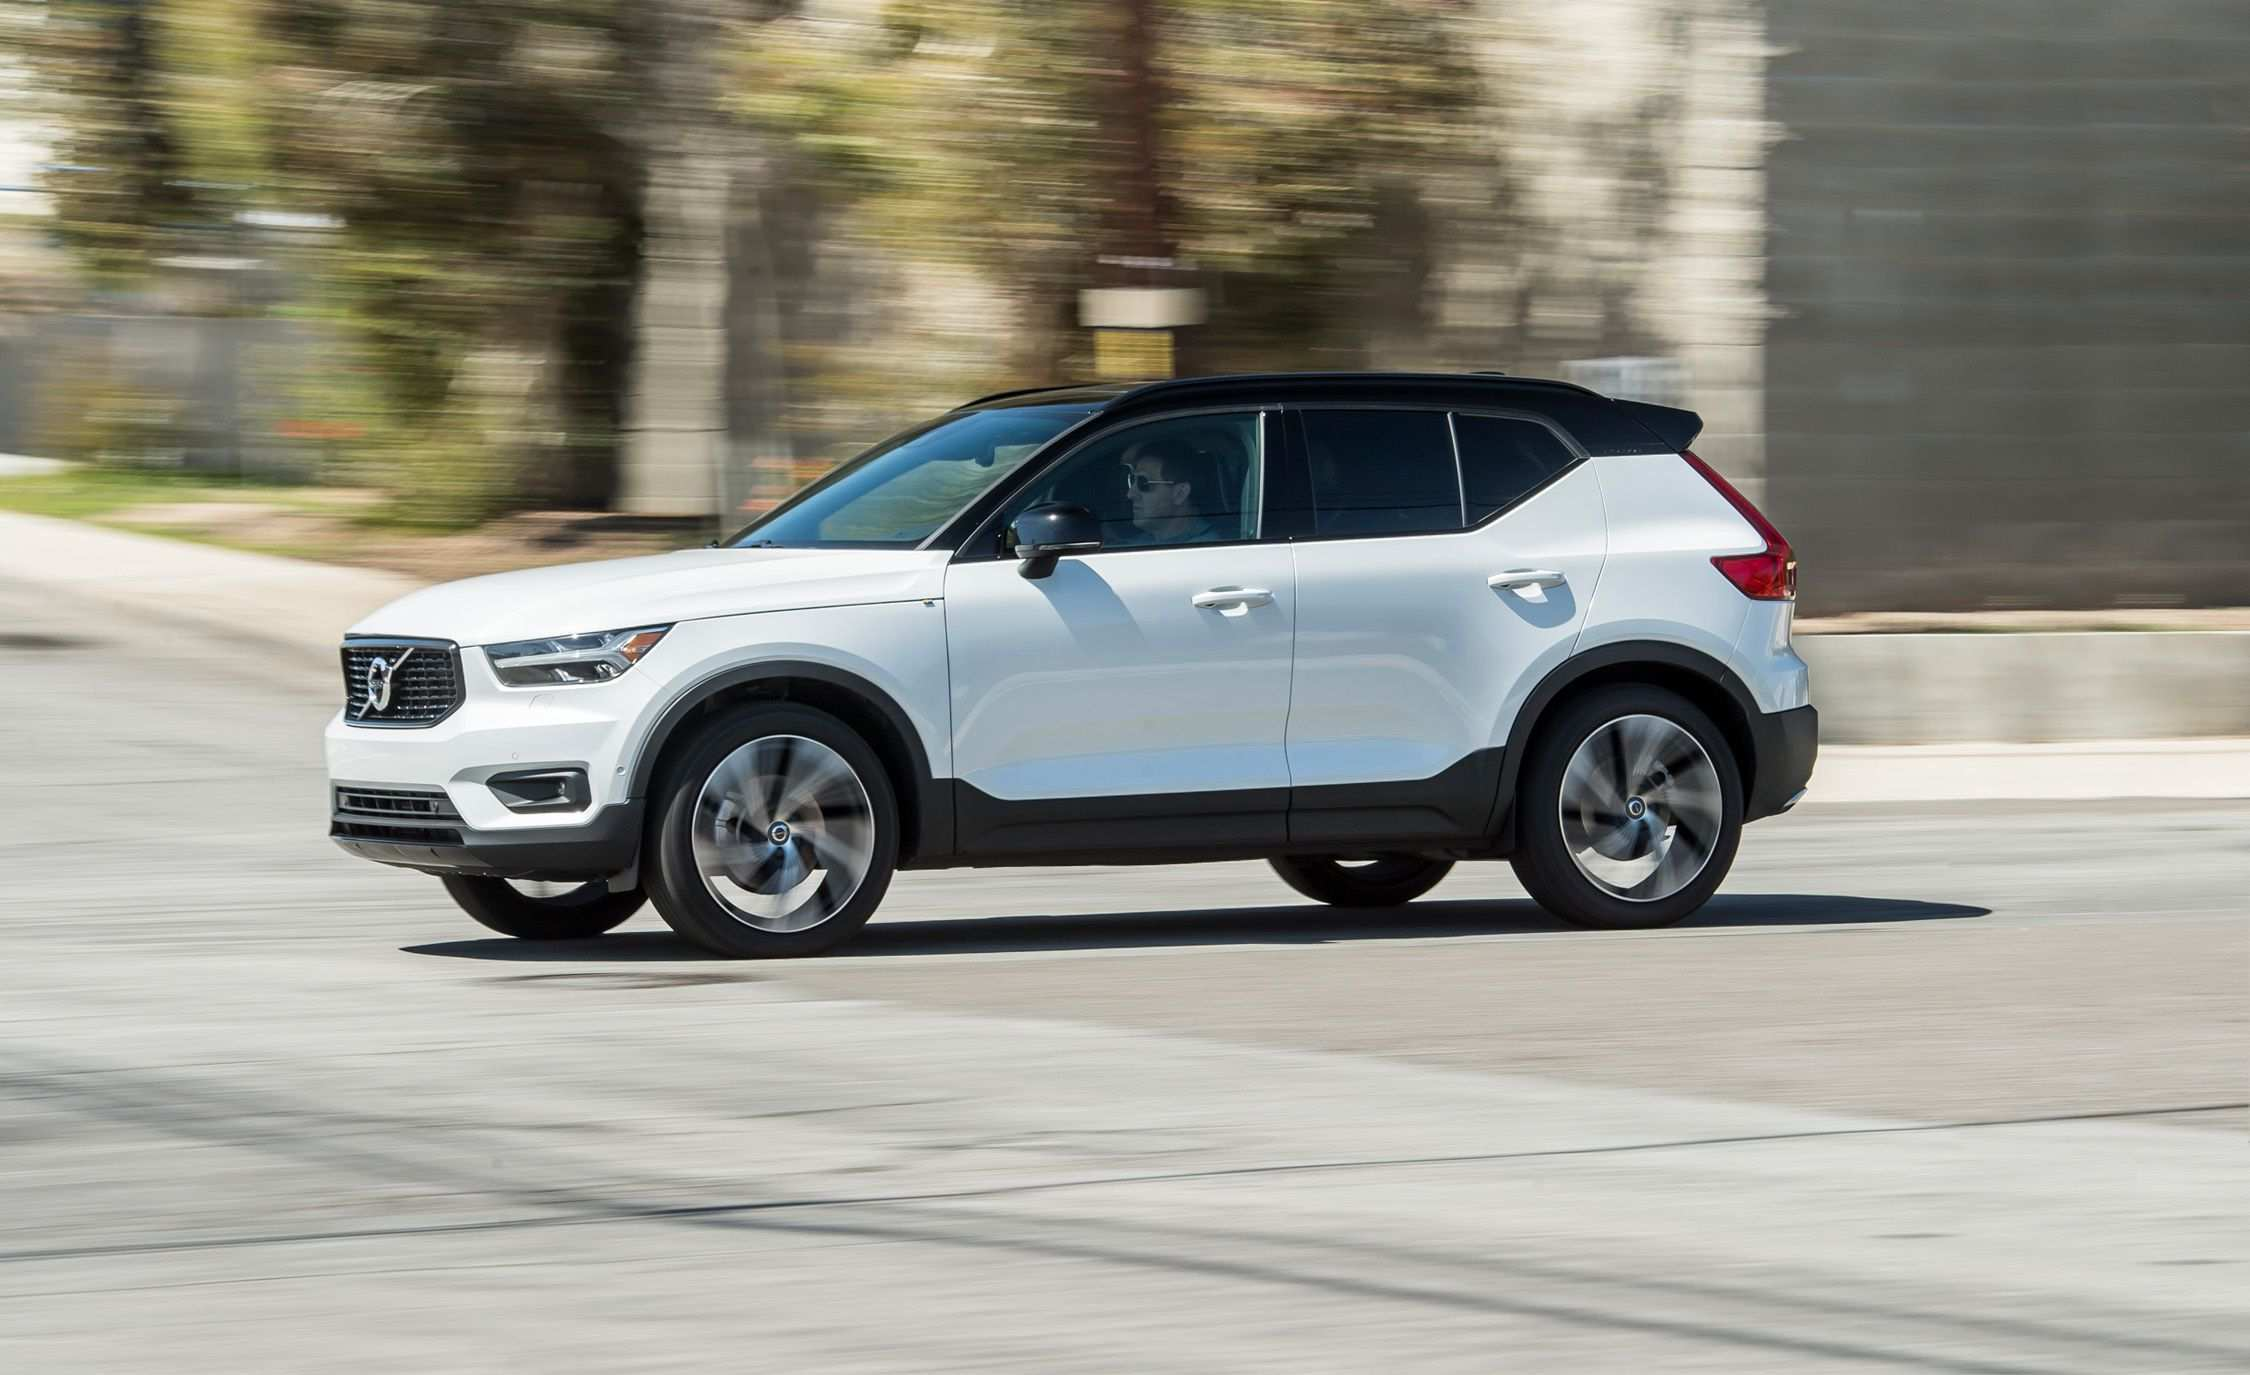 19 The Best Volvo Electric Suv 2019 First Drive Price Performance And Review Performance for Best Volvo Electric Suv 2019 First Drive Price Performance And Review